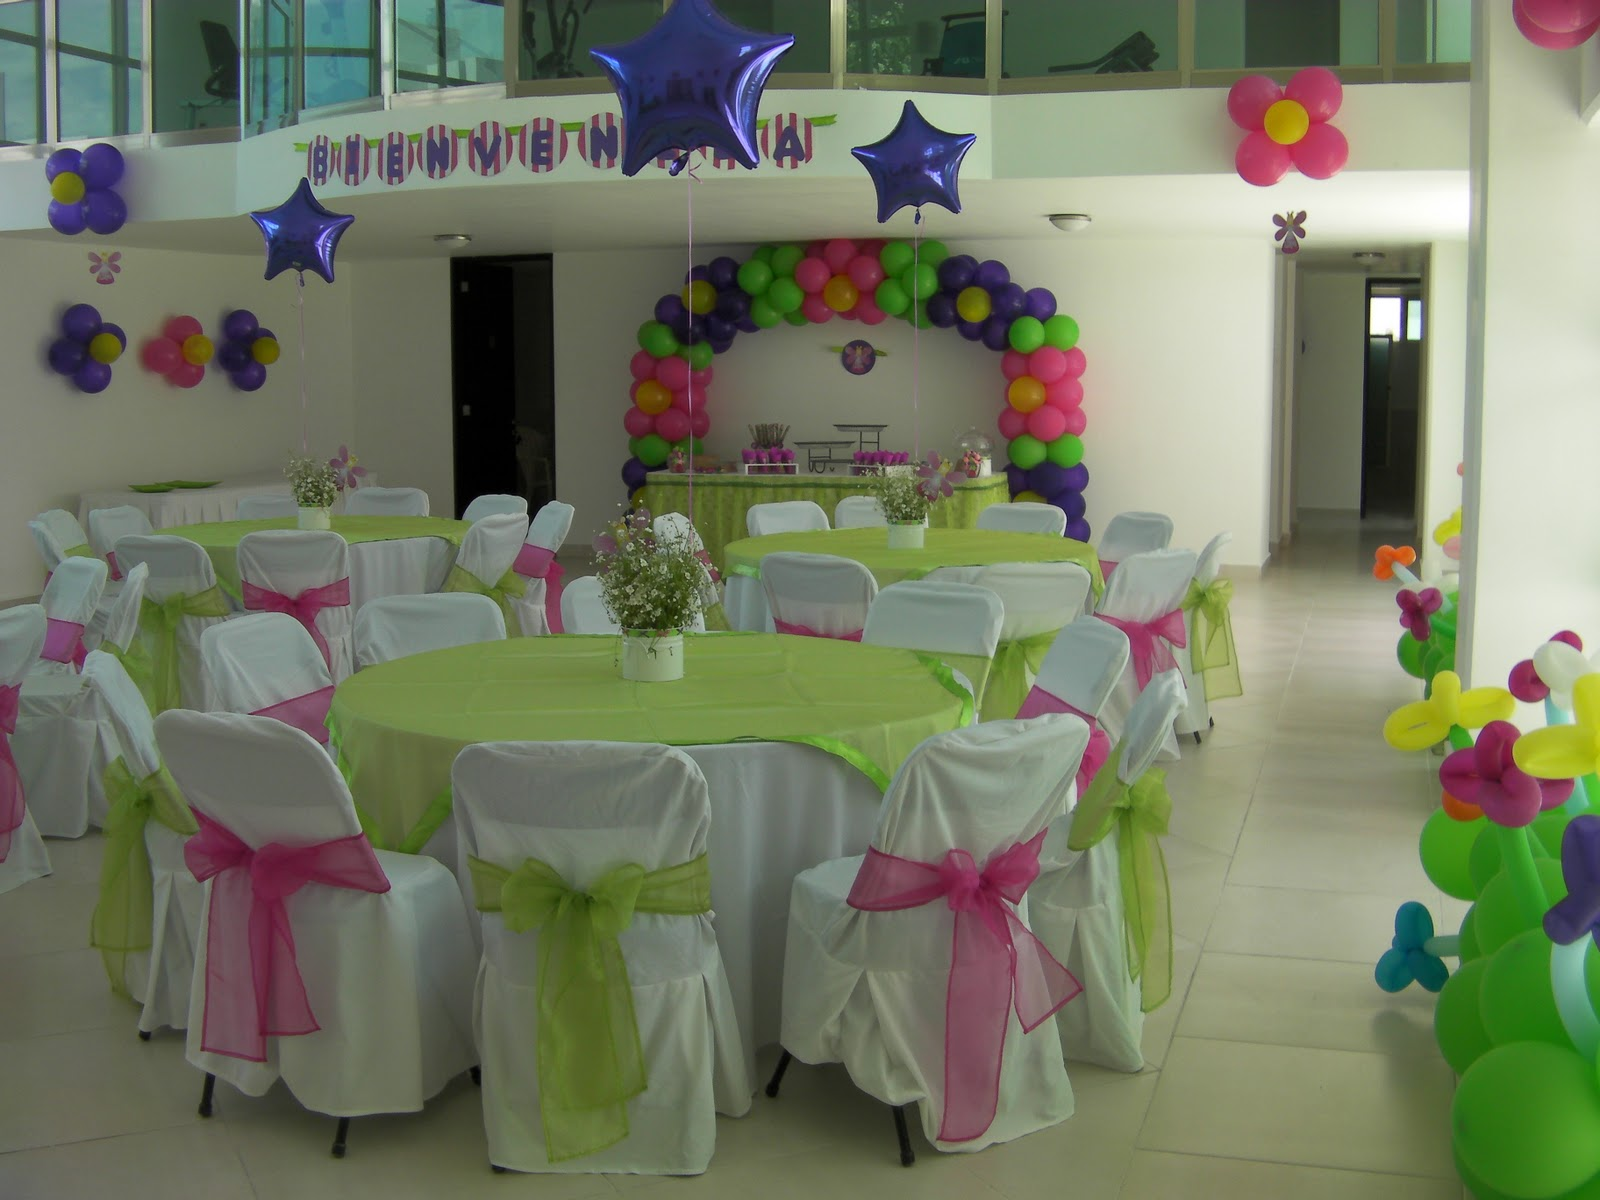 Party boutique canc n baby shower con el tema de hadas - Decoracion para salones de casa ...